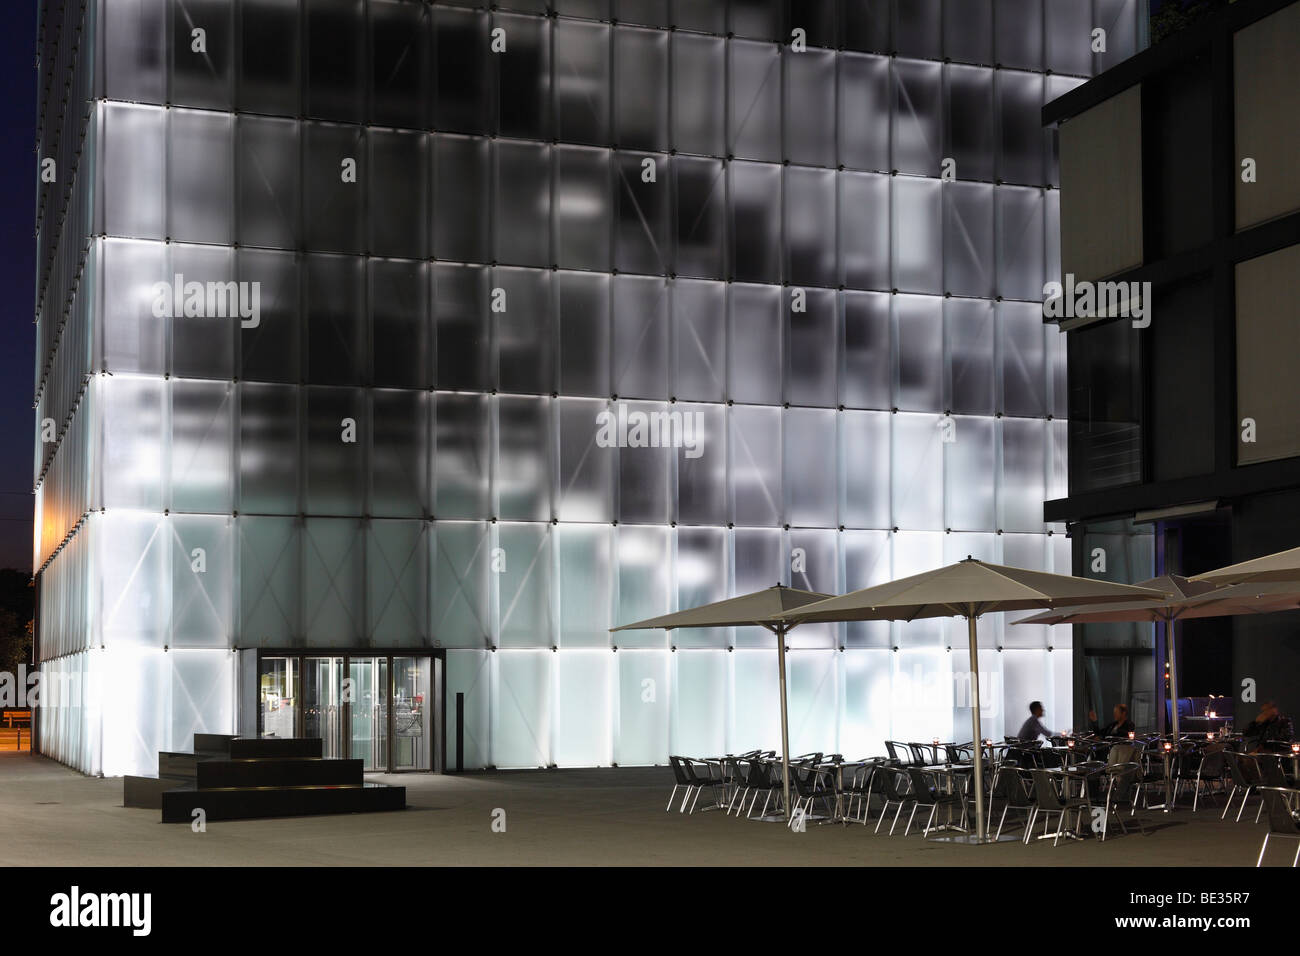 kunsthaus bregenz museum karl tizian platz square vorarlberg stock photo 25885979 alamy. Black Bedroom Furniture Sets. Home Design Ideas